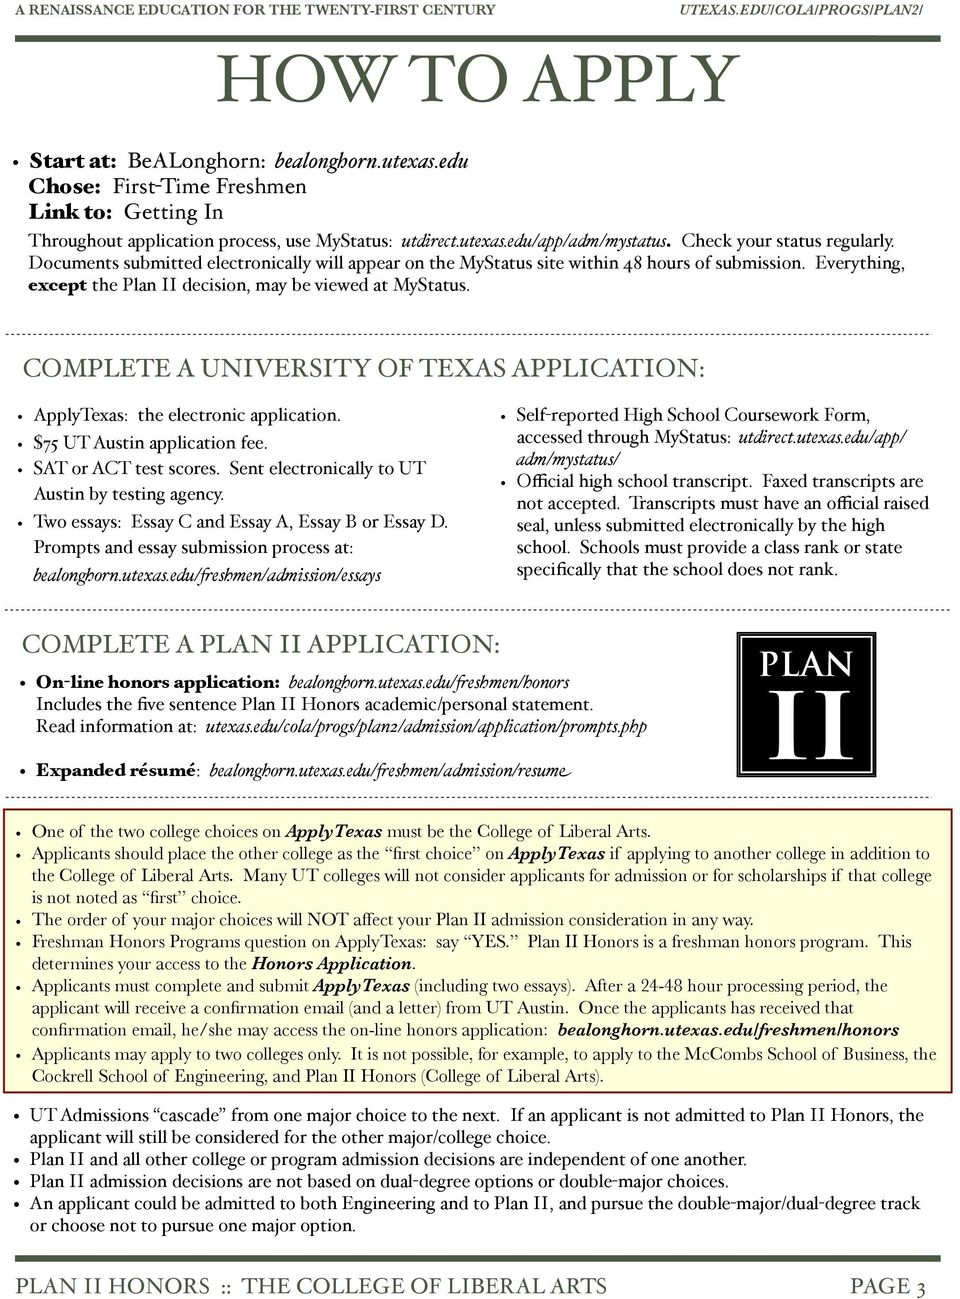 011 Page New Apply Texas Essays Topics Archaicawful Essay Prompts 2018-19 Topic C Examples B Full